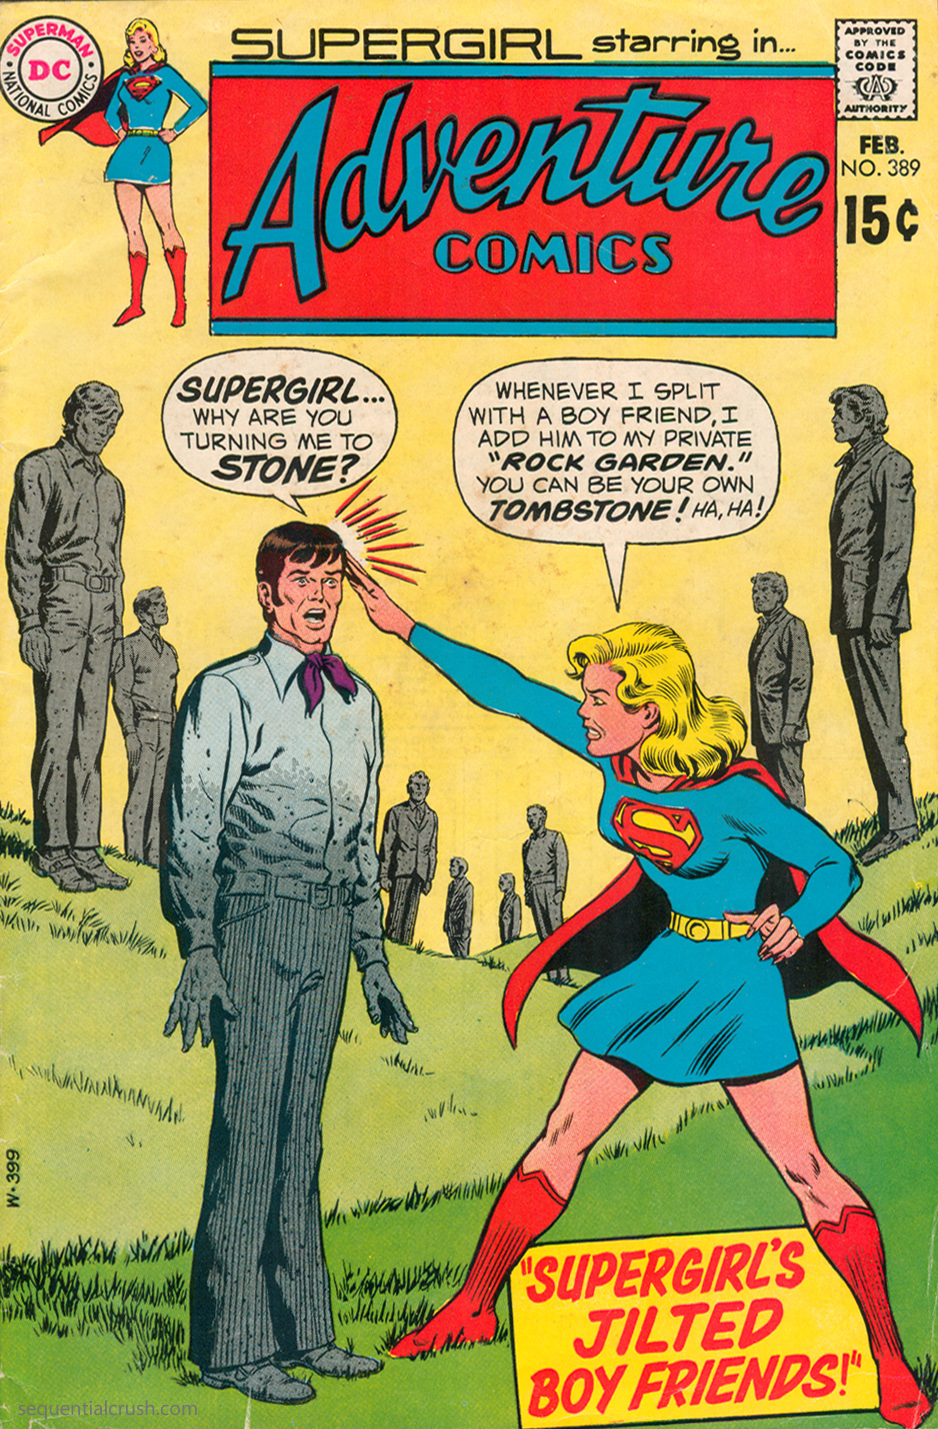 Adventure Comics  #389 (February 1970) Pencils: Curt Swan, Inks: Murphy Anderson